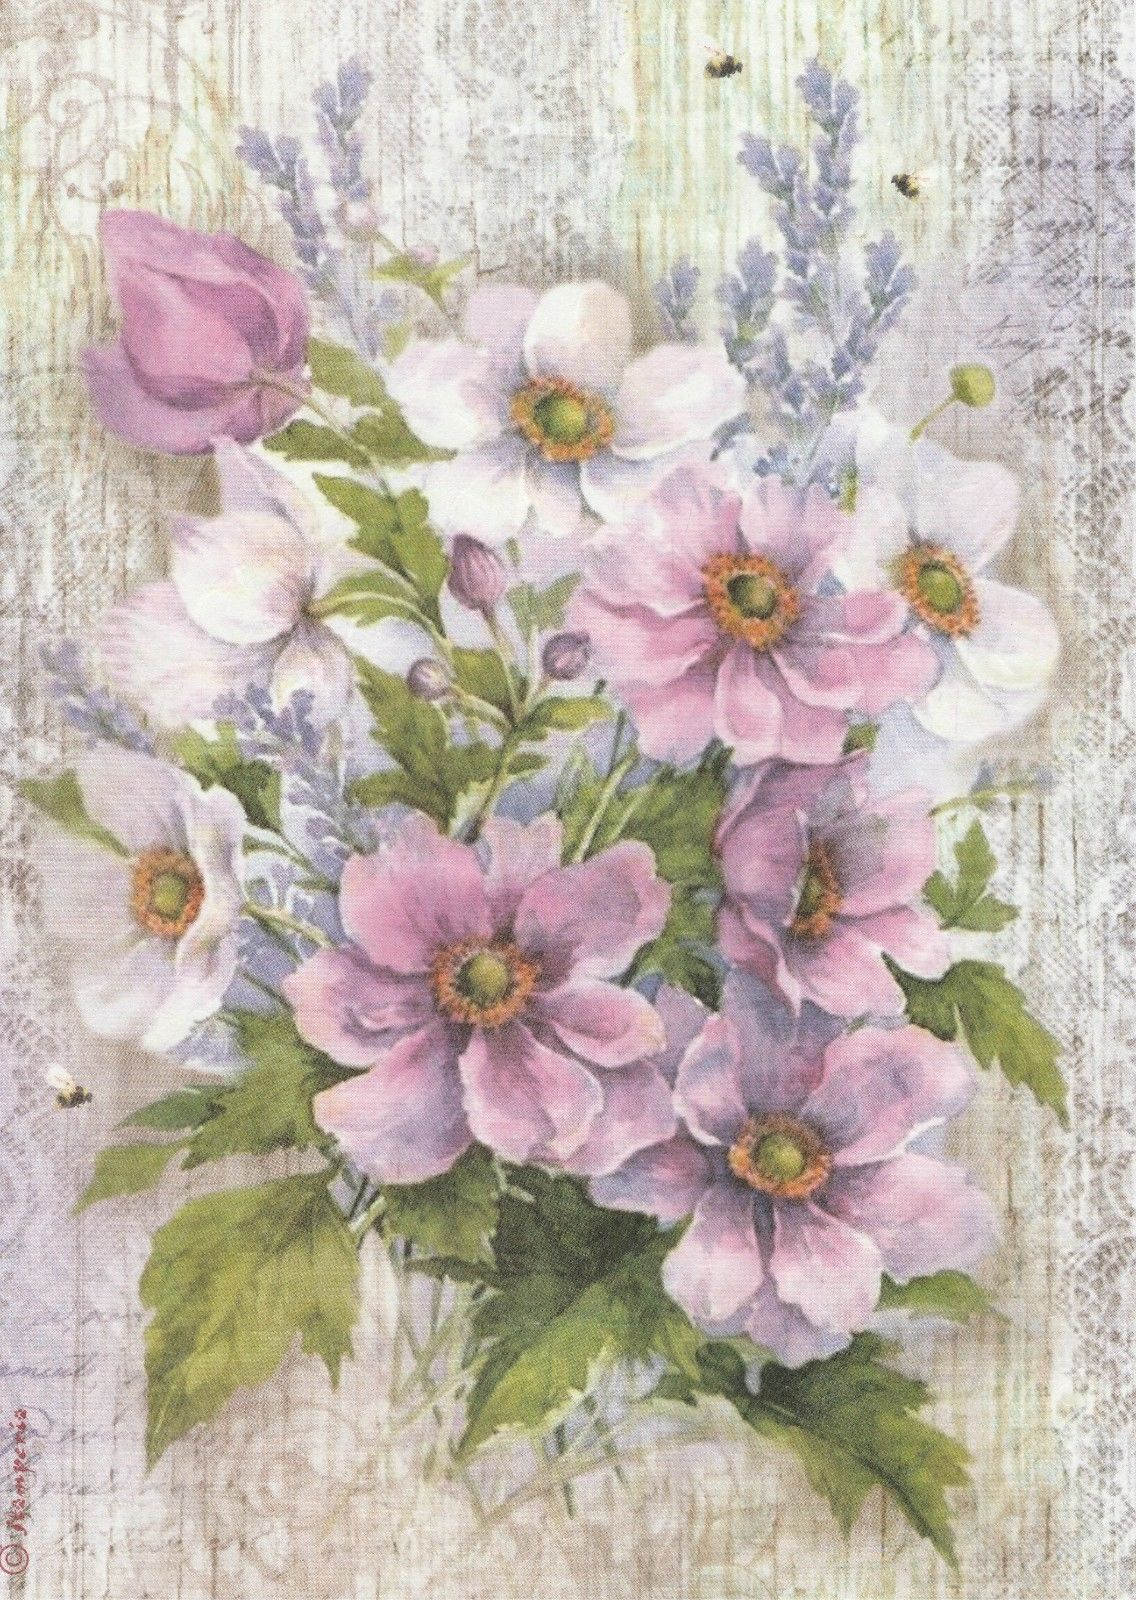 Pure Male Flowers Violet Decoupage Rice Paper R0217-1 x A4 Sheet of decoupage Rice Paper